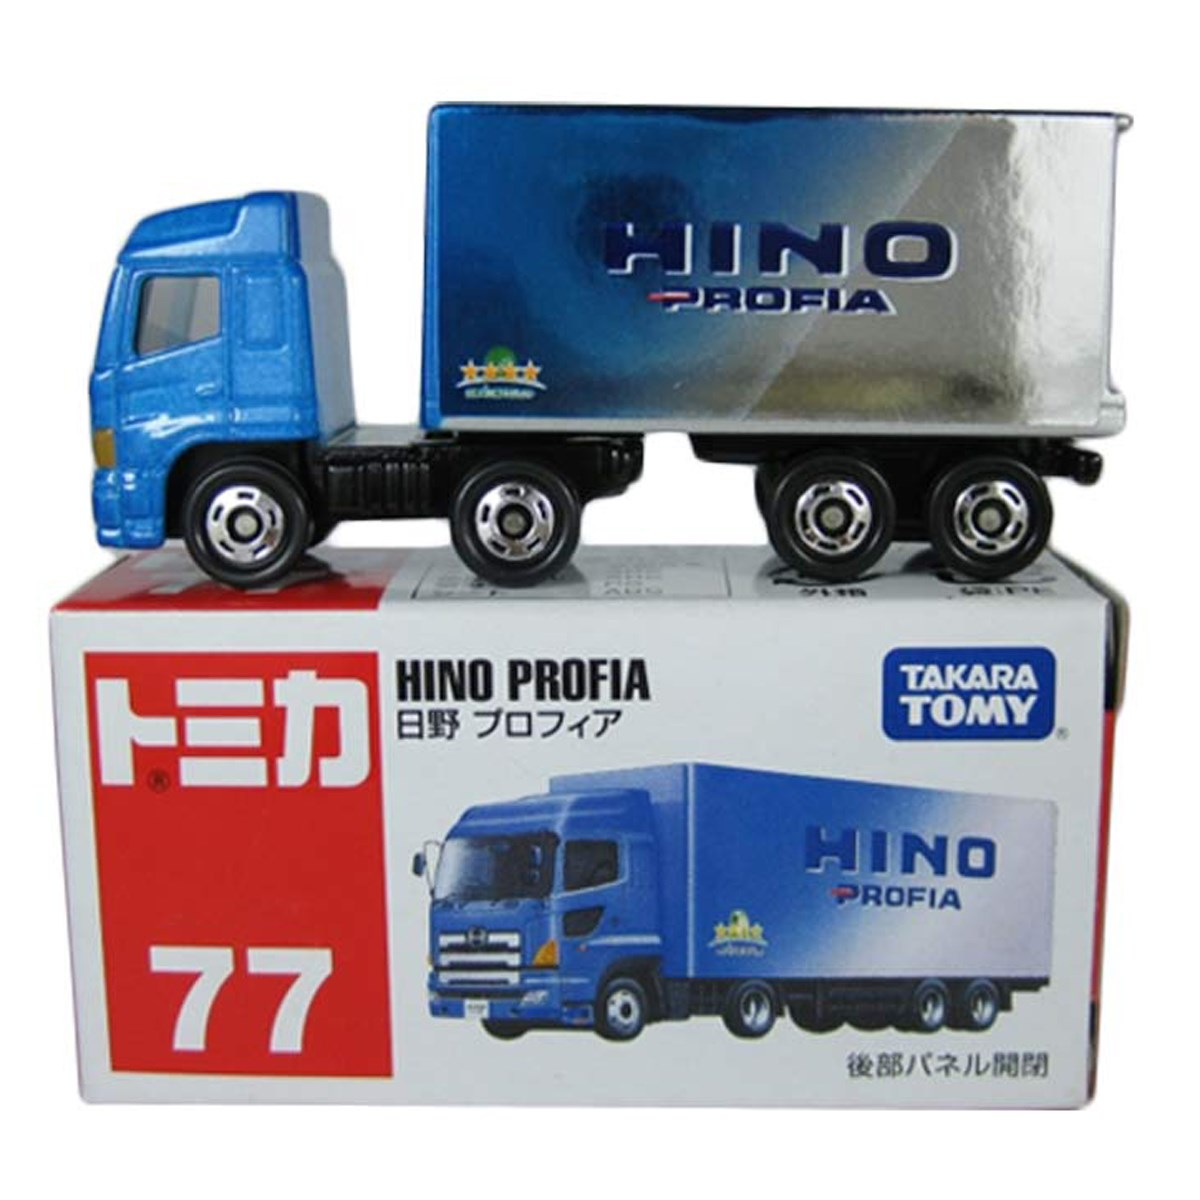 Do choi Tomy 702764 – Mo hinh xe co thung cho hang Hino Profia